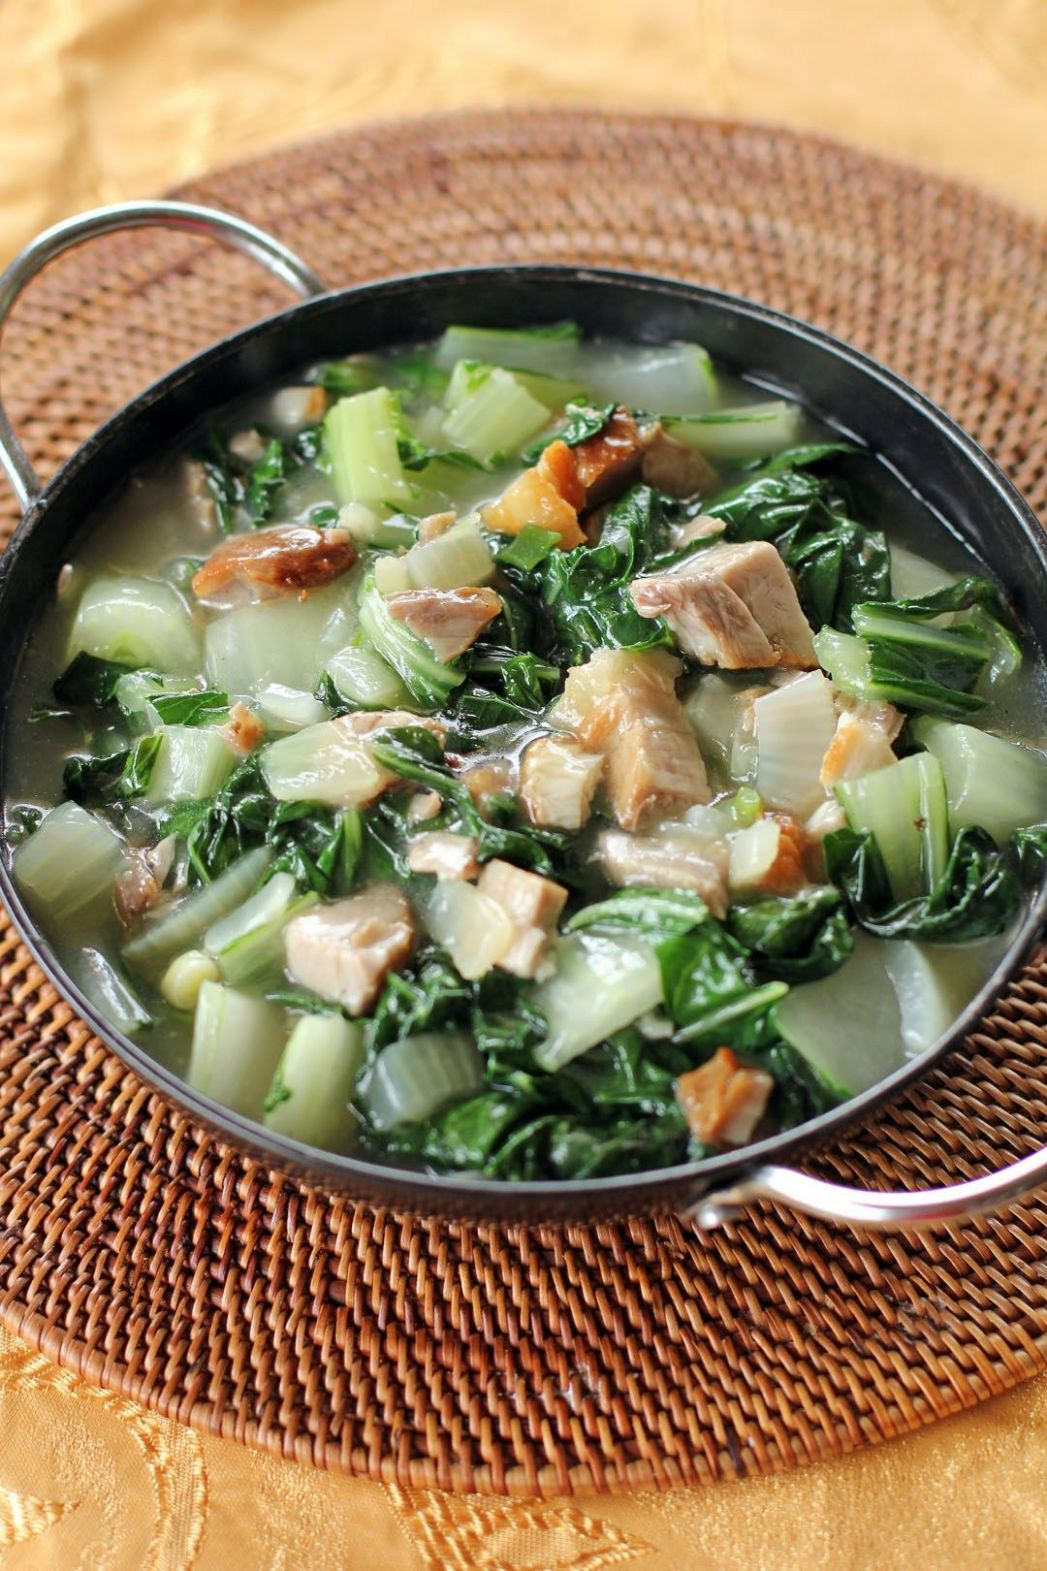 Guisadong Pechay (Sauteed Bok Choy) - Vegetable Recipes In The Philippines